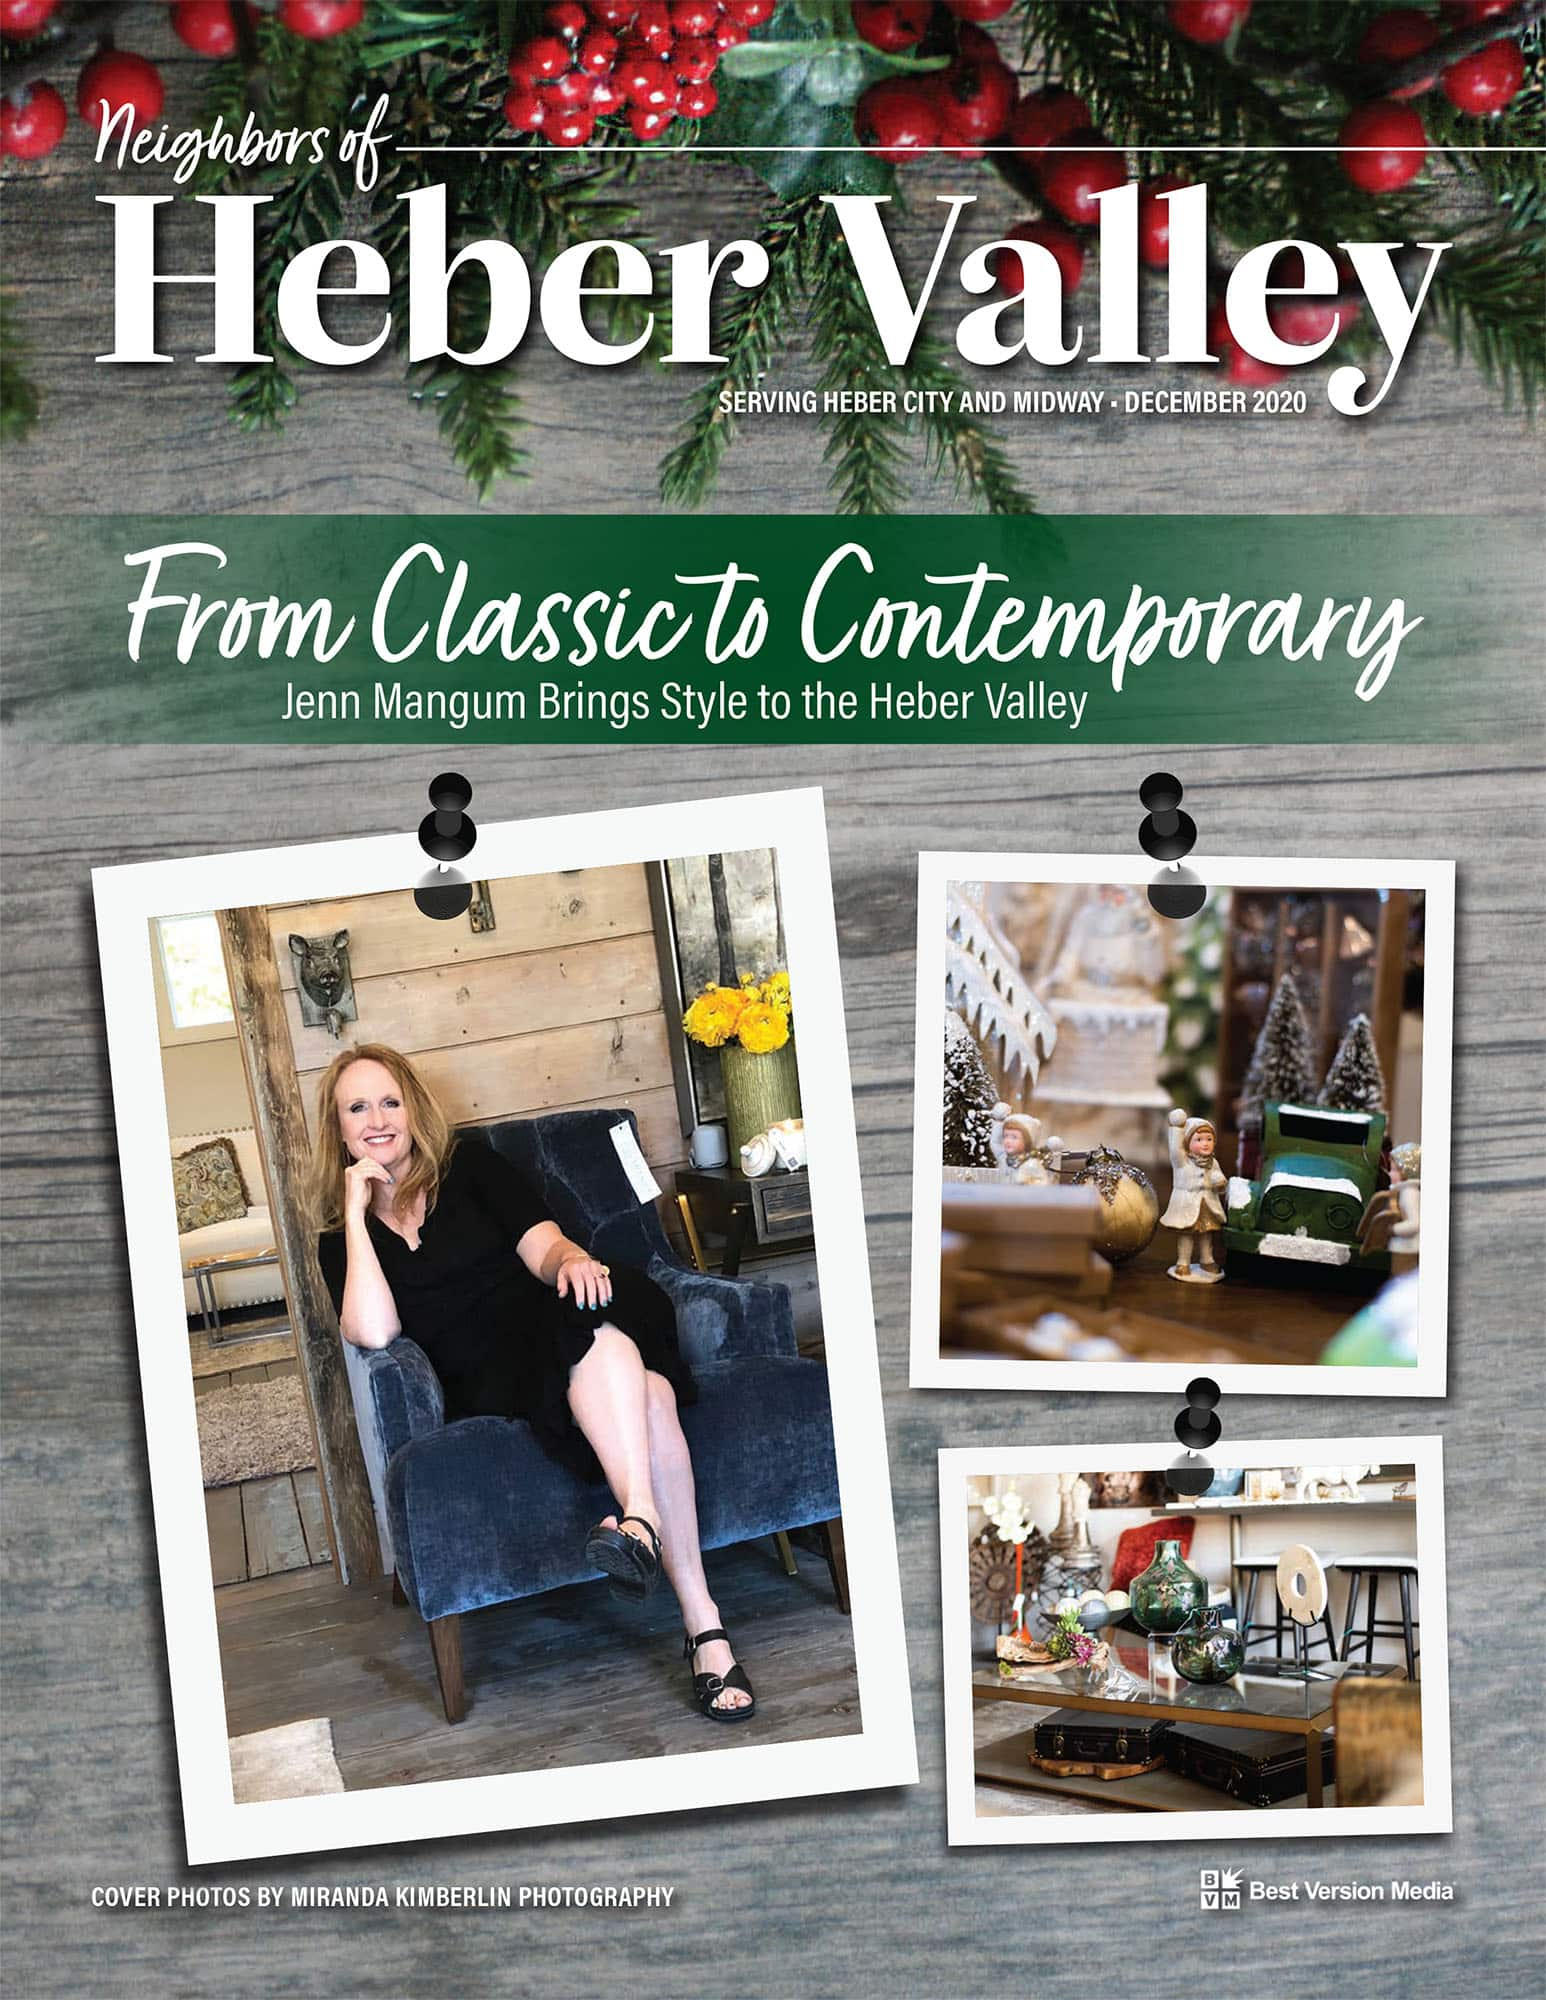 Neighbors of Heber Valley featured article: From Classic to Contemporary